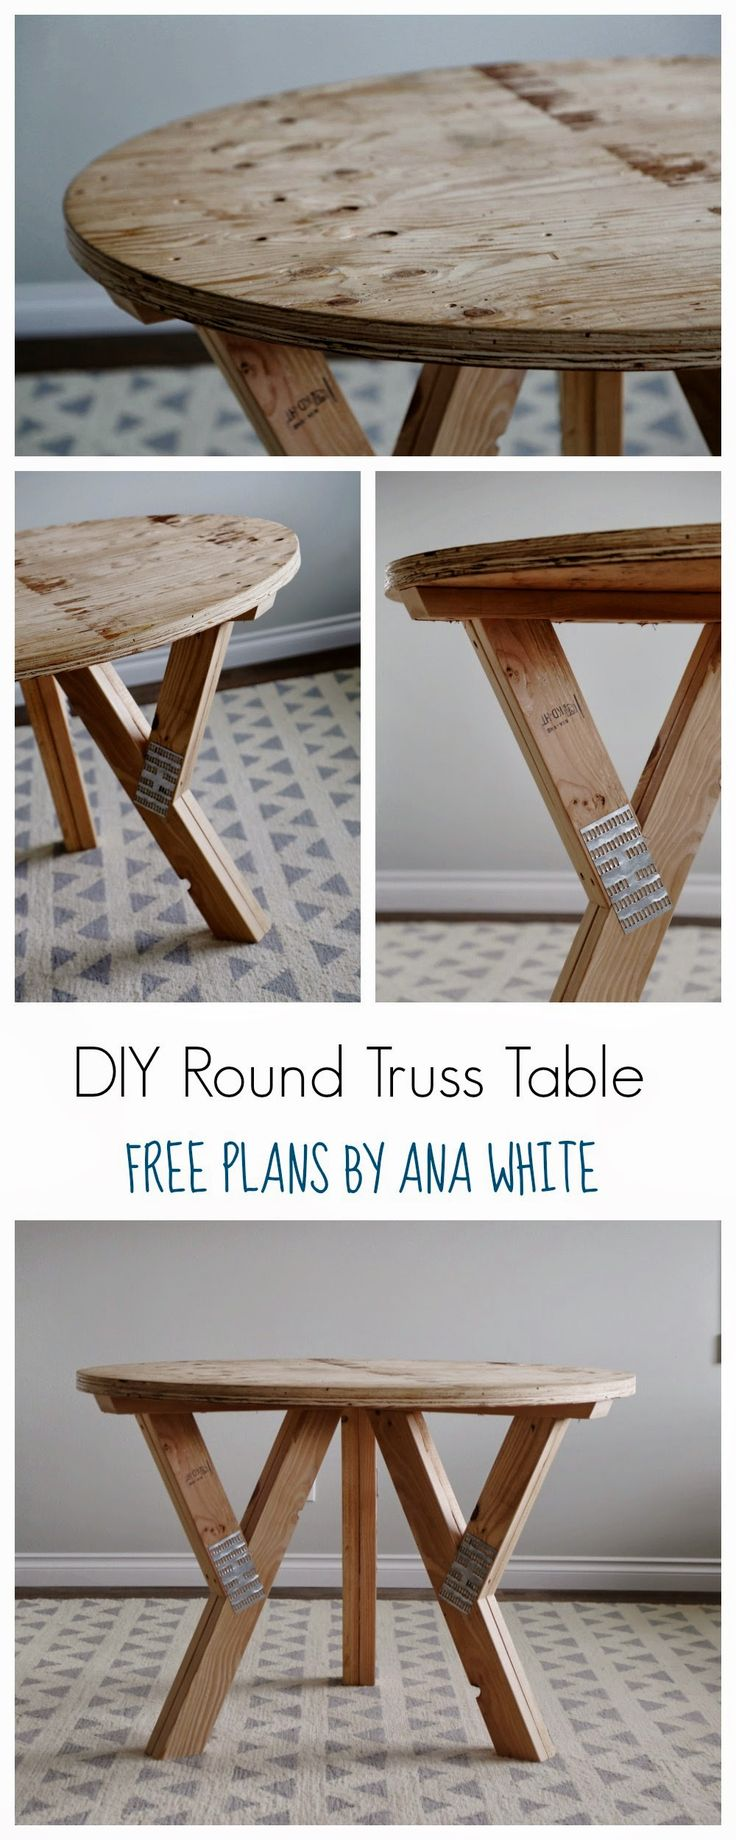 432 Best Images About Dining Room Tutorials On Pinterest DIY Furniture Ana